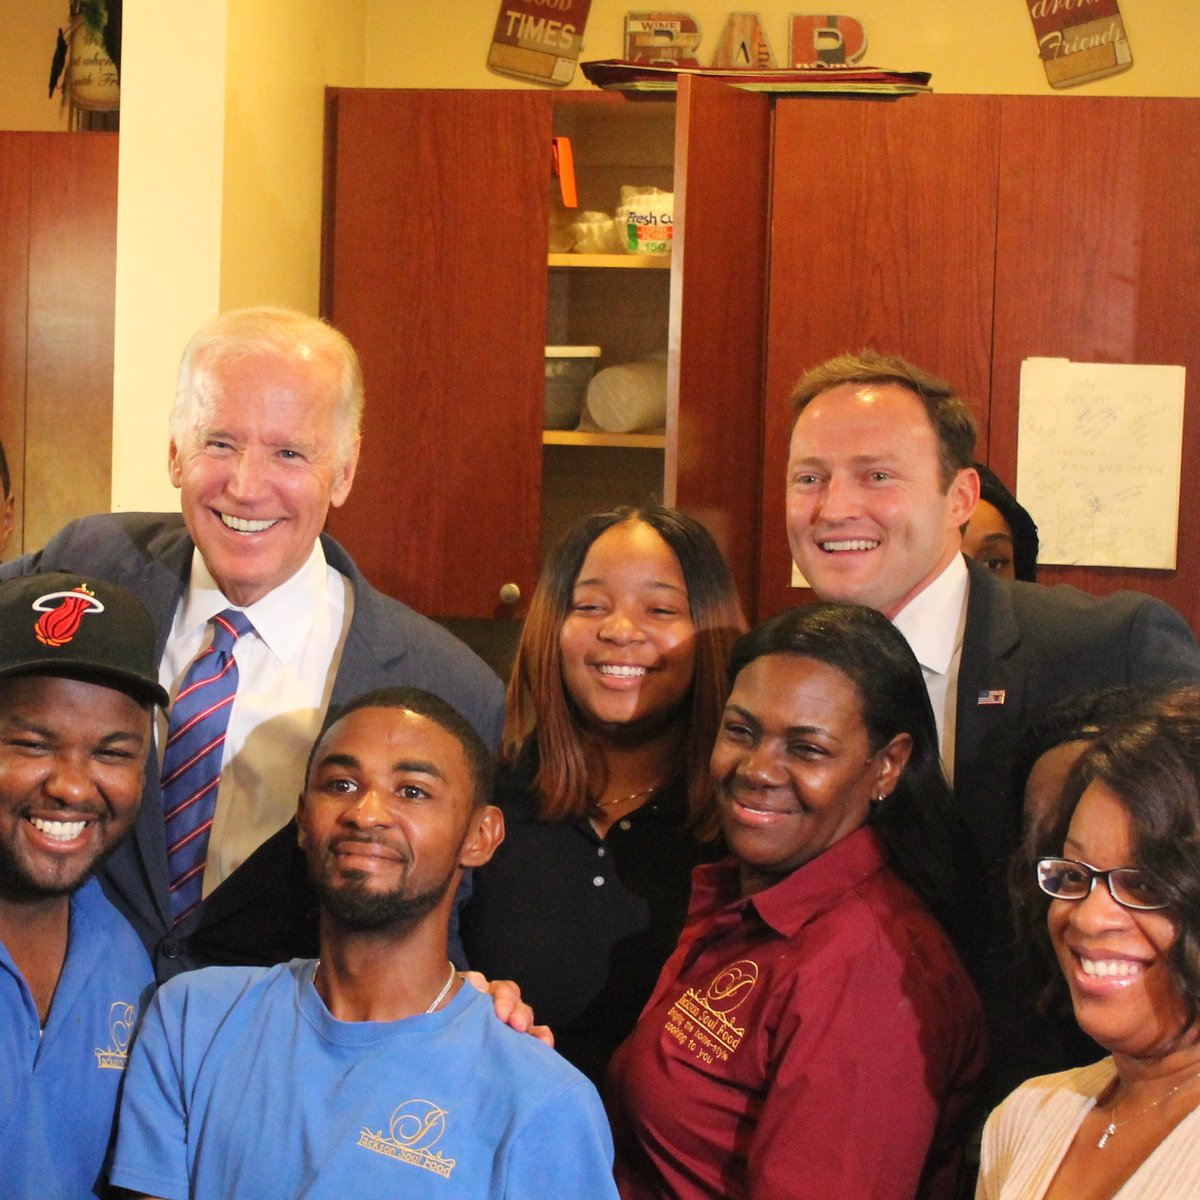 Congrats @JoeBiden for amazing wins across the country last night. Two weeks til Florida! #DemocraticPrimary